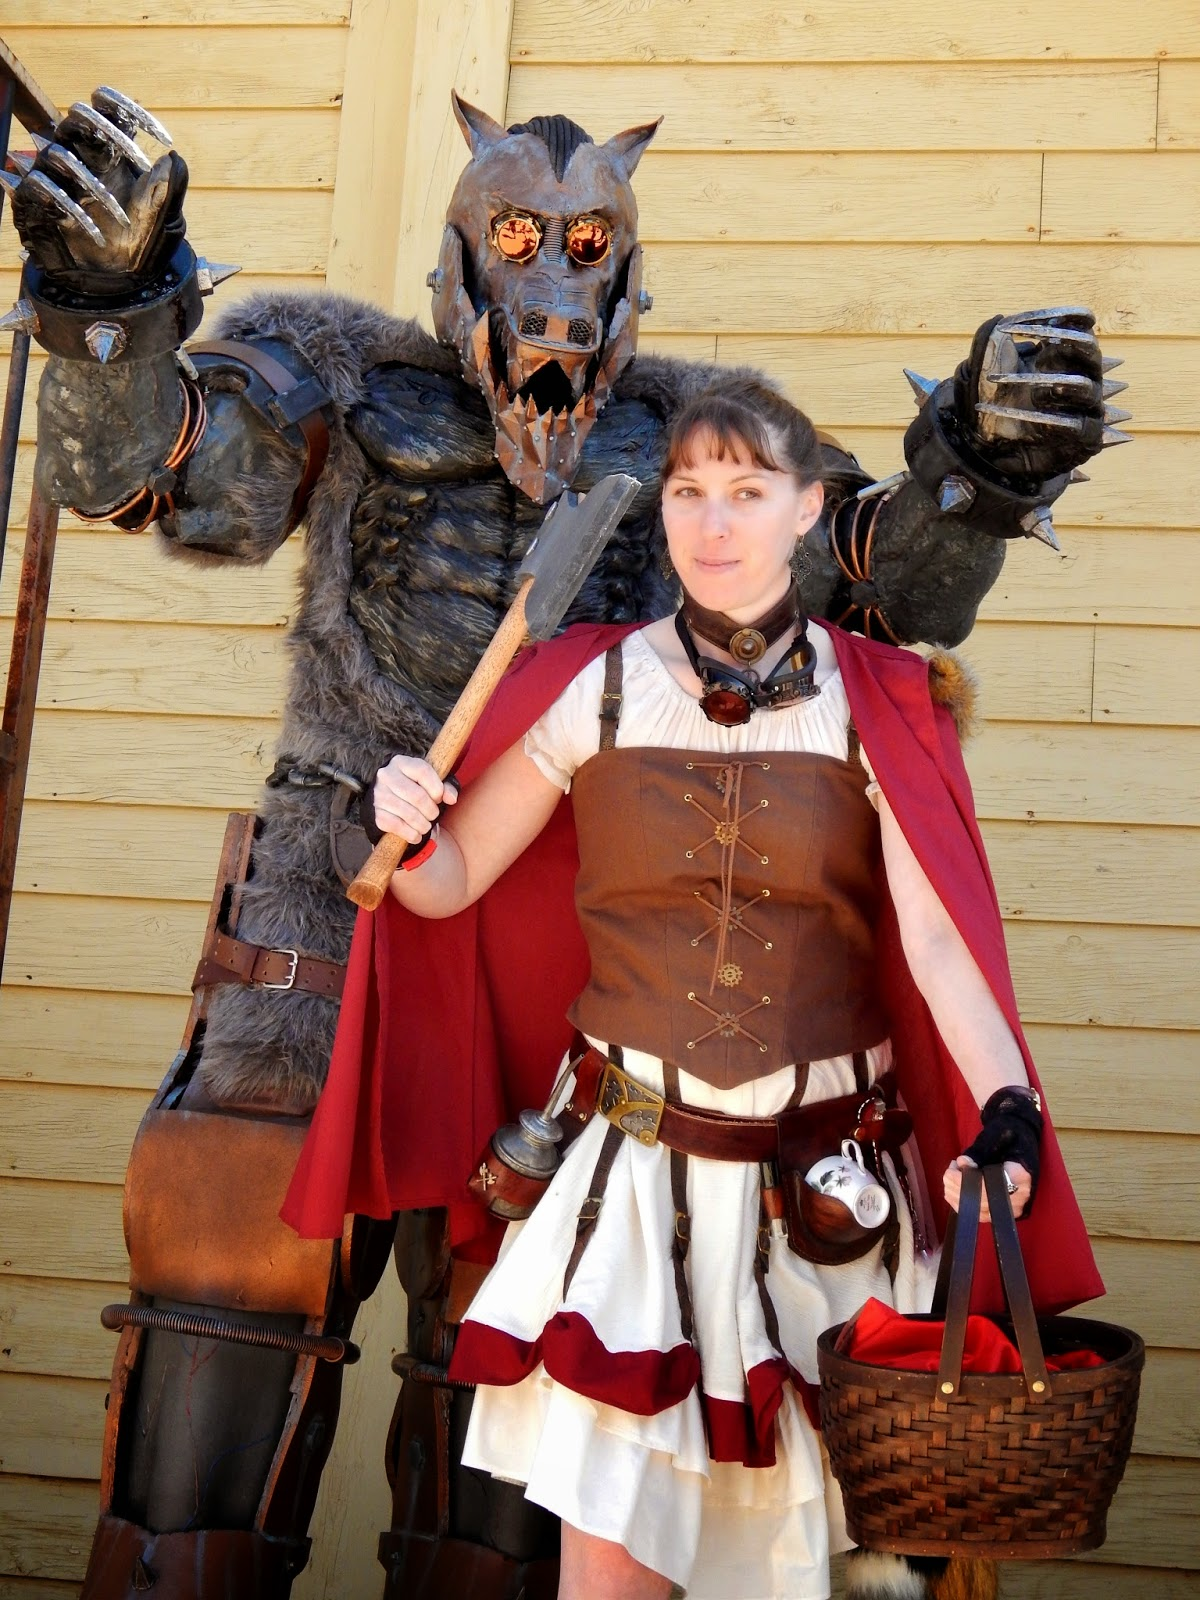 Wild Wild West Steampunk Con cosplay Red Riding Hood and Wolf